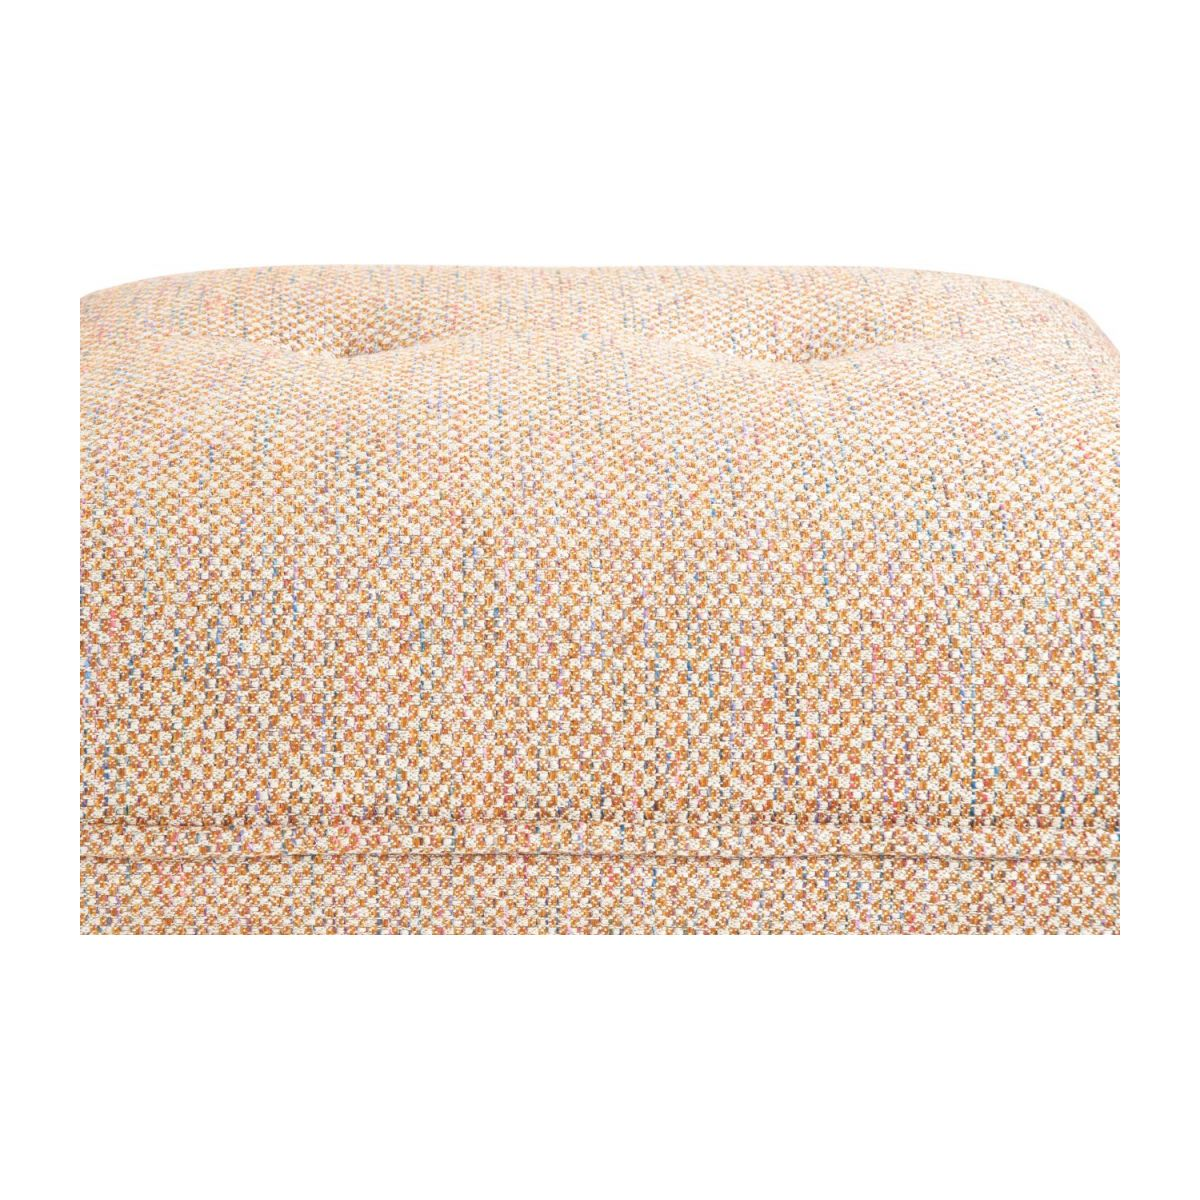 Footstool in Bellagio fabric, passion orange and dark legs n°6